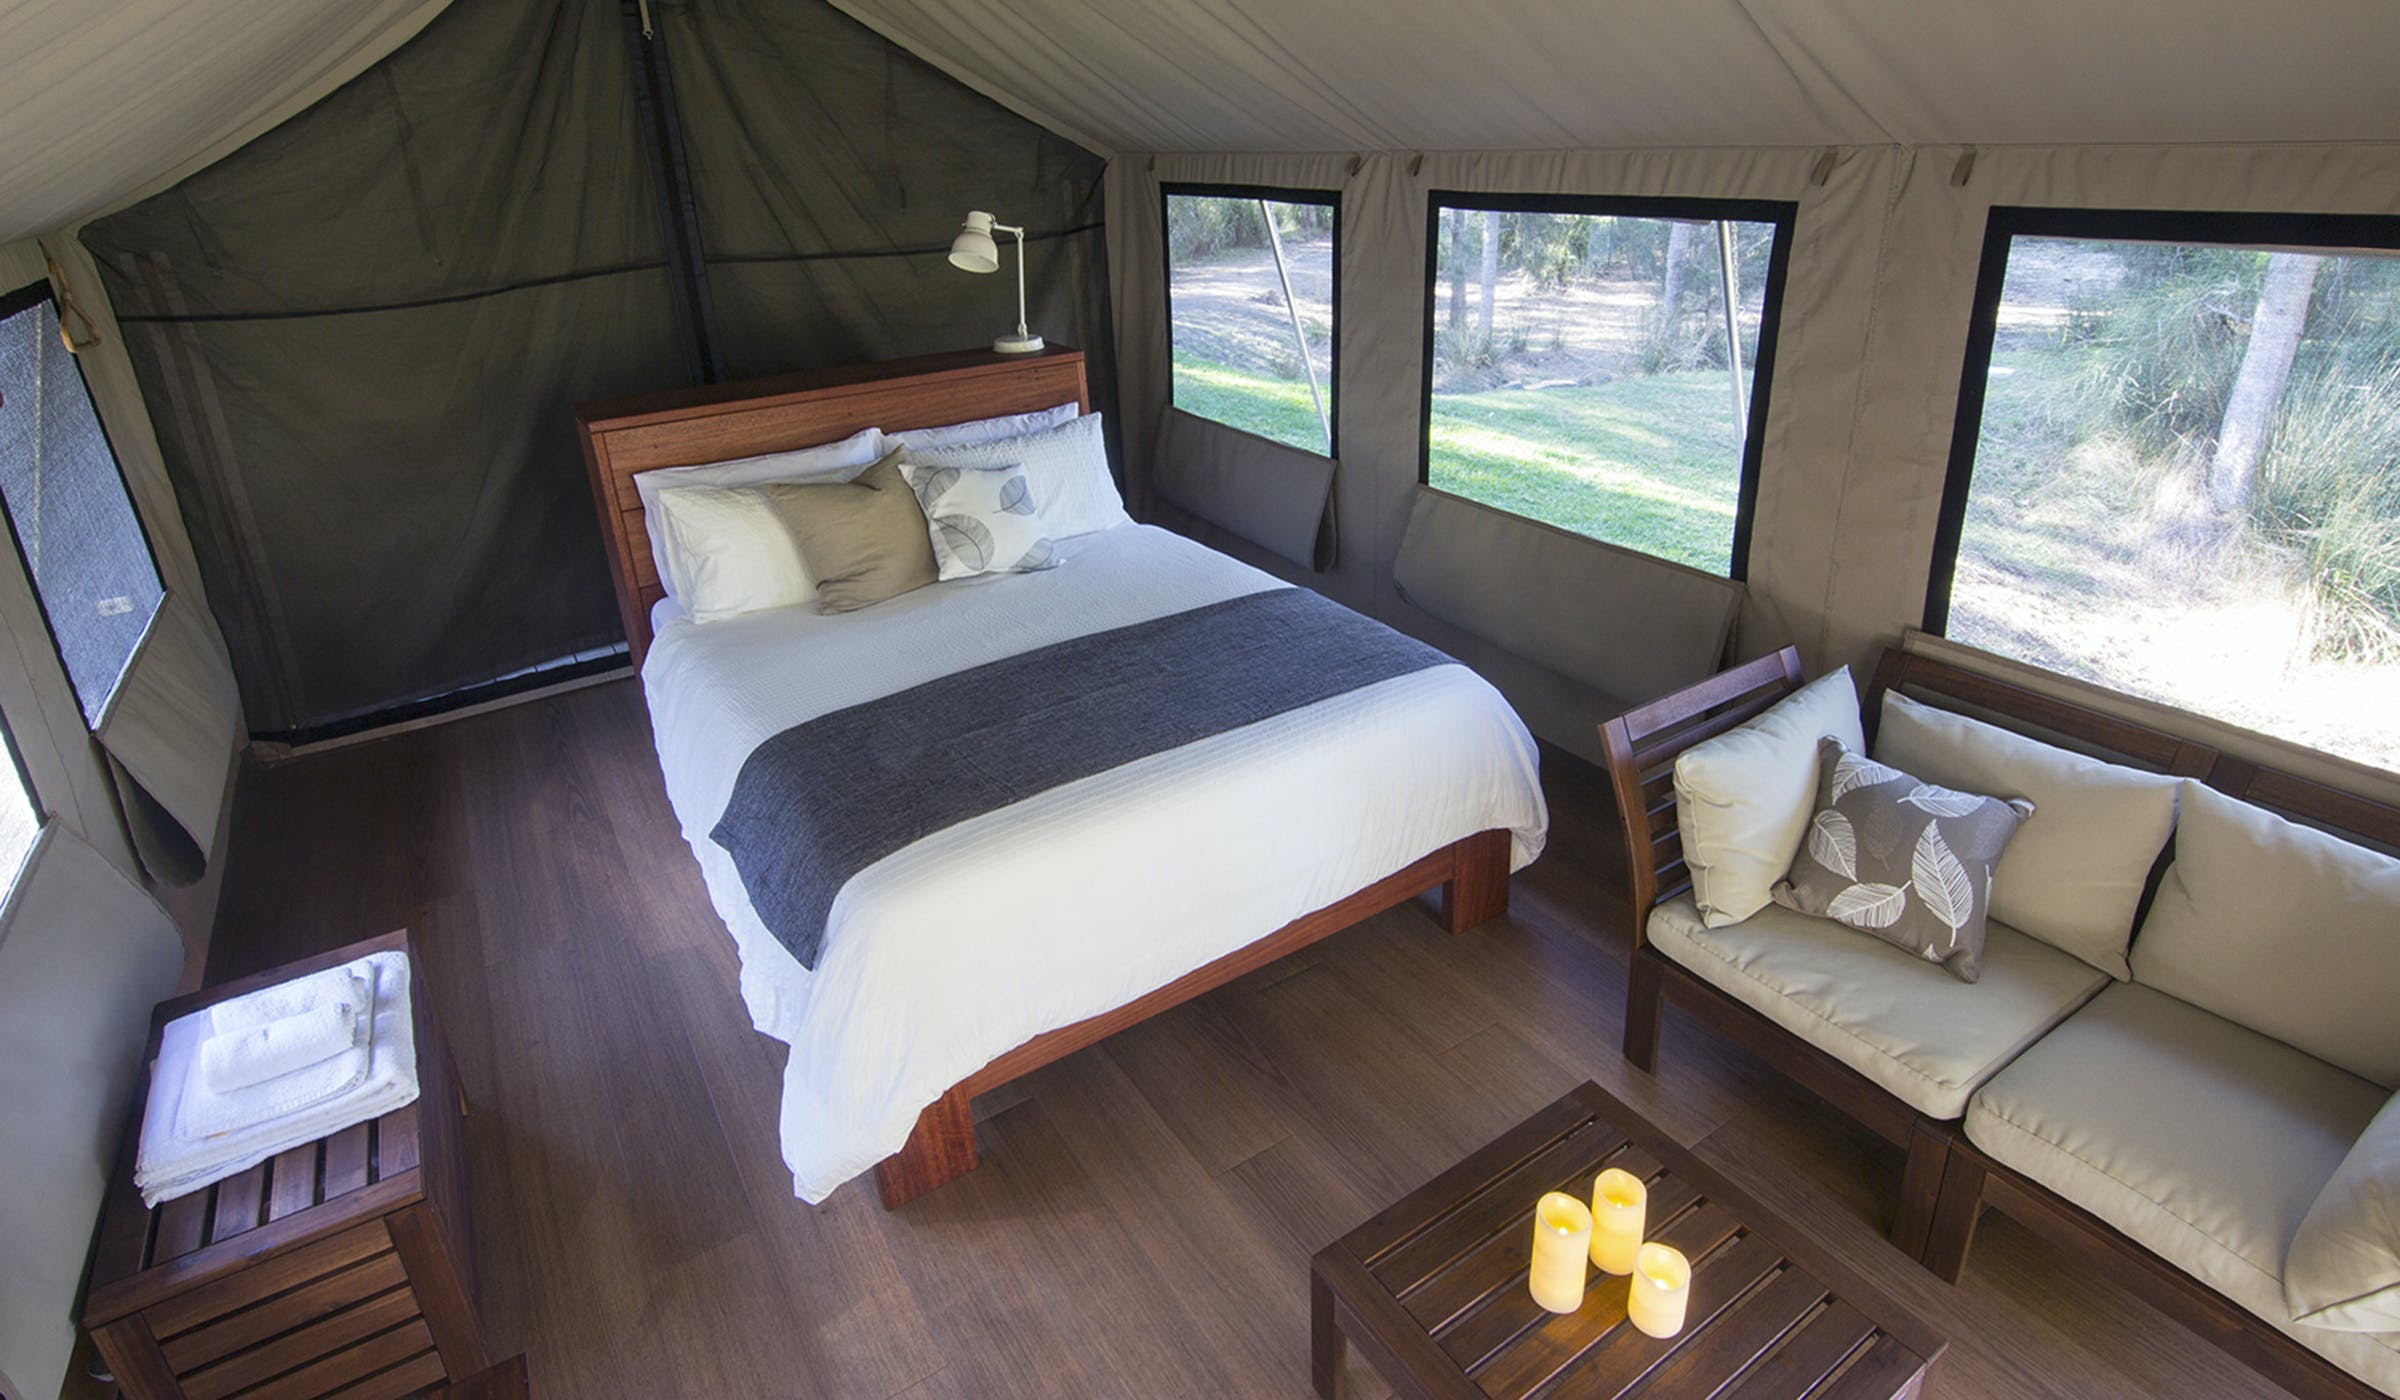 Bangalay Retreat glamping safari tent at Bawley Point, NSW